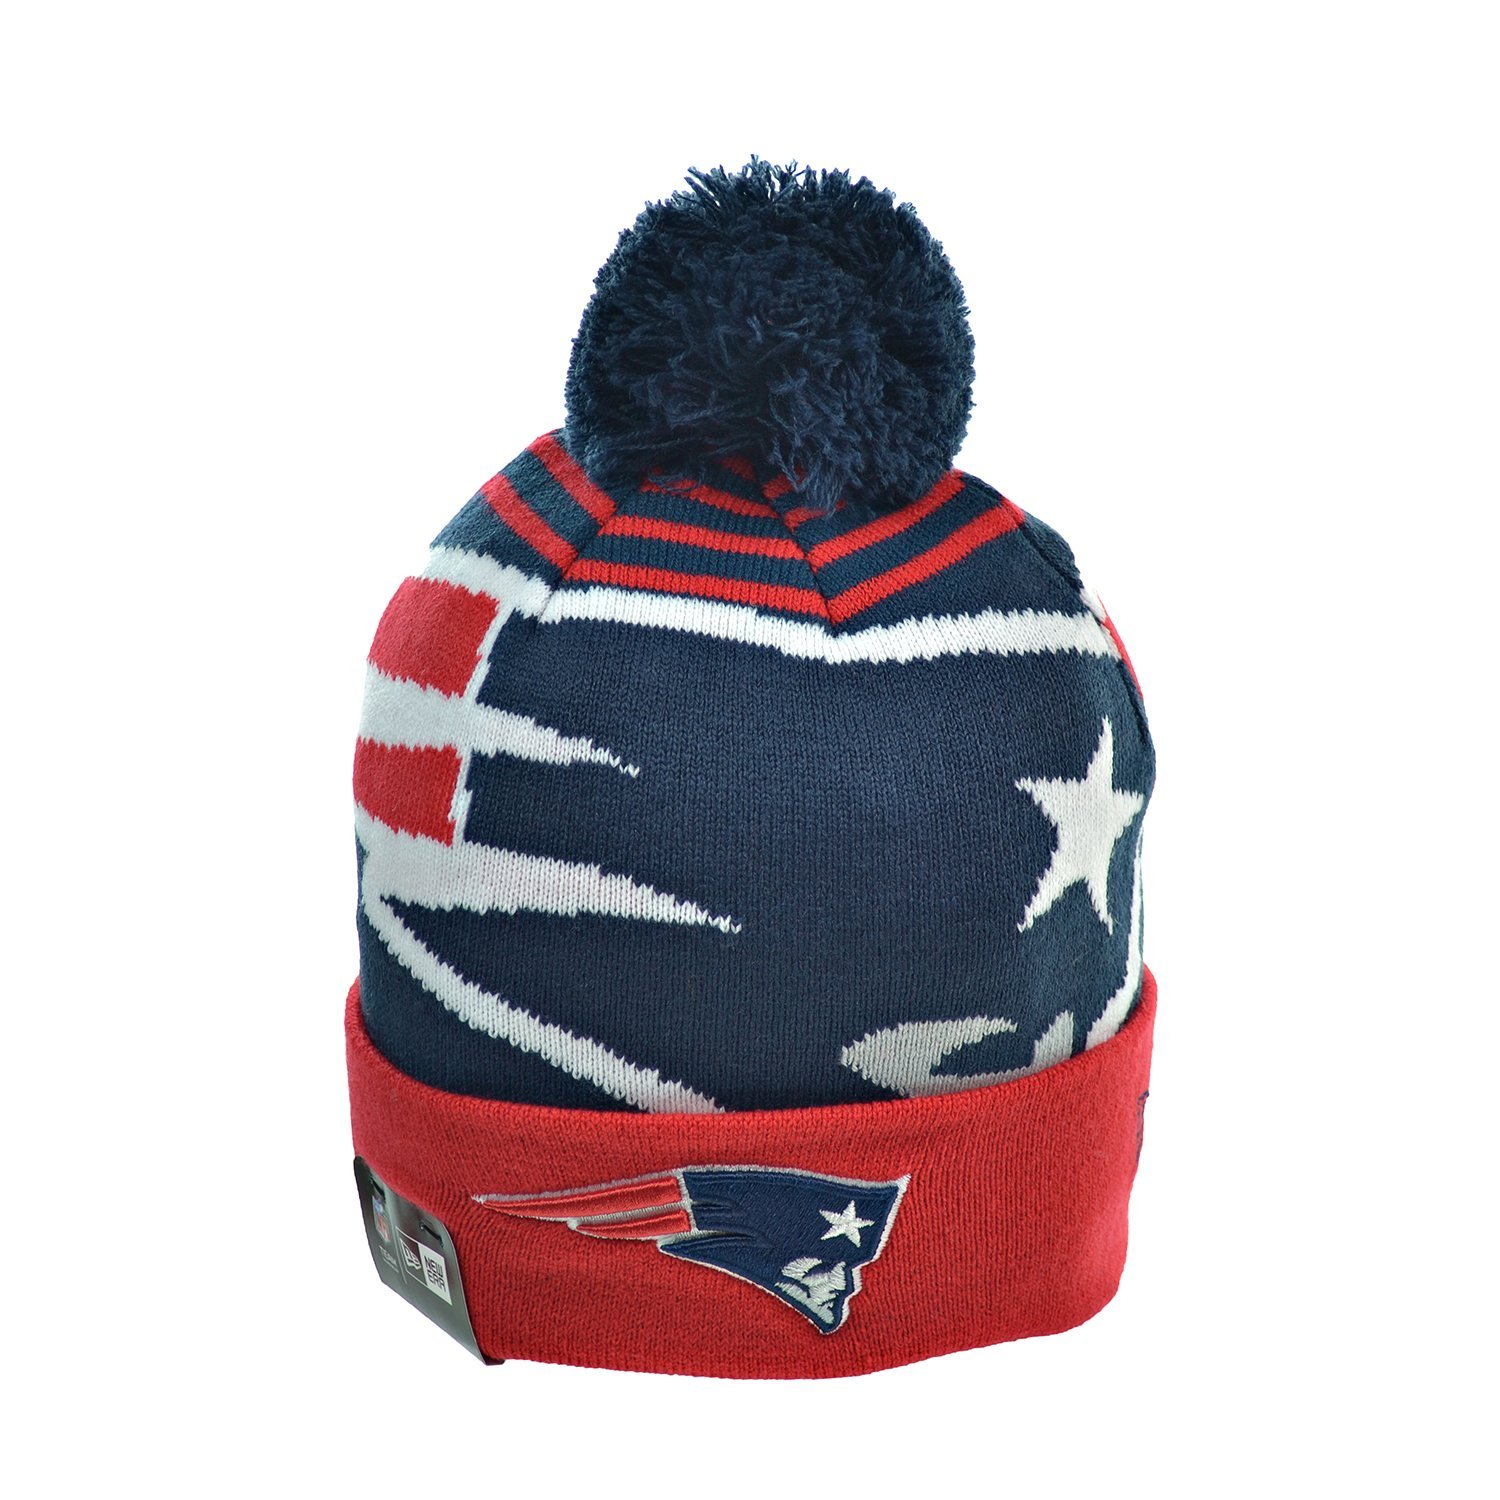 0f5b54495 Get Quotations · New Era New England Patriots NFL Men s Winter Knit Pom  Beanie Red Blue White